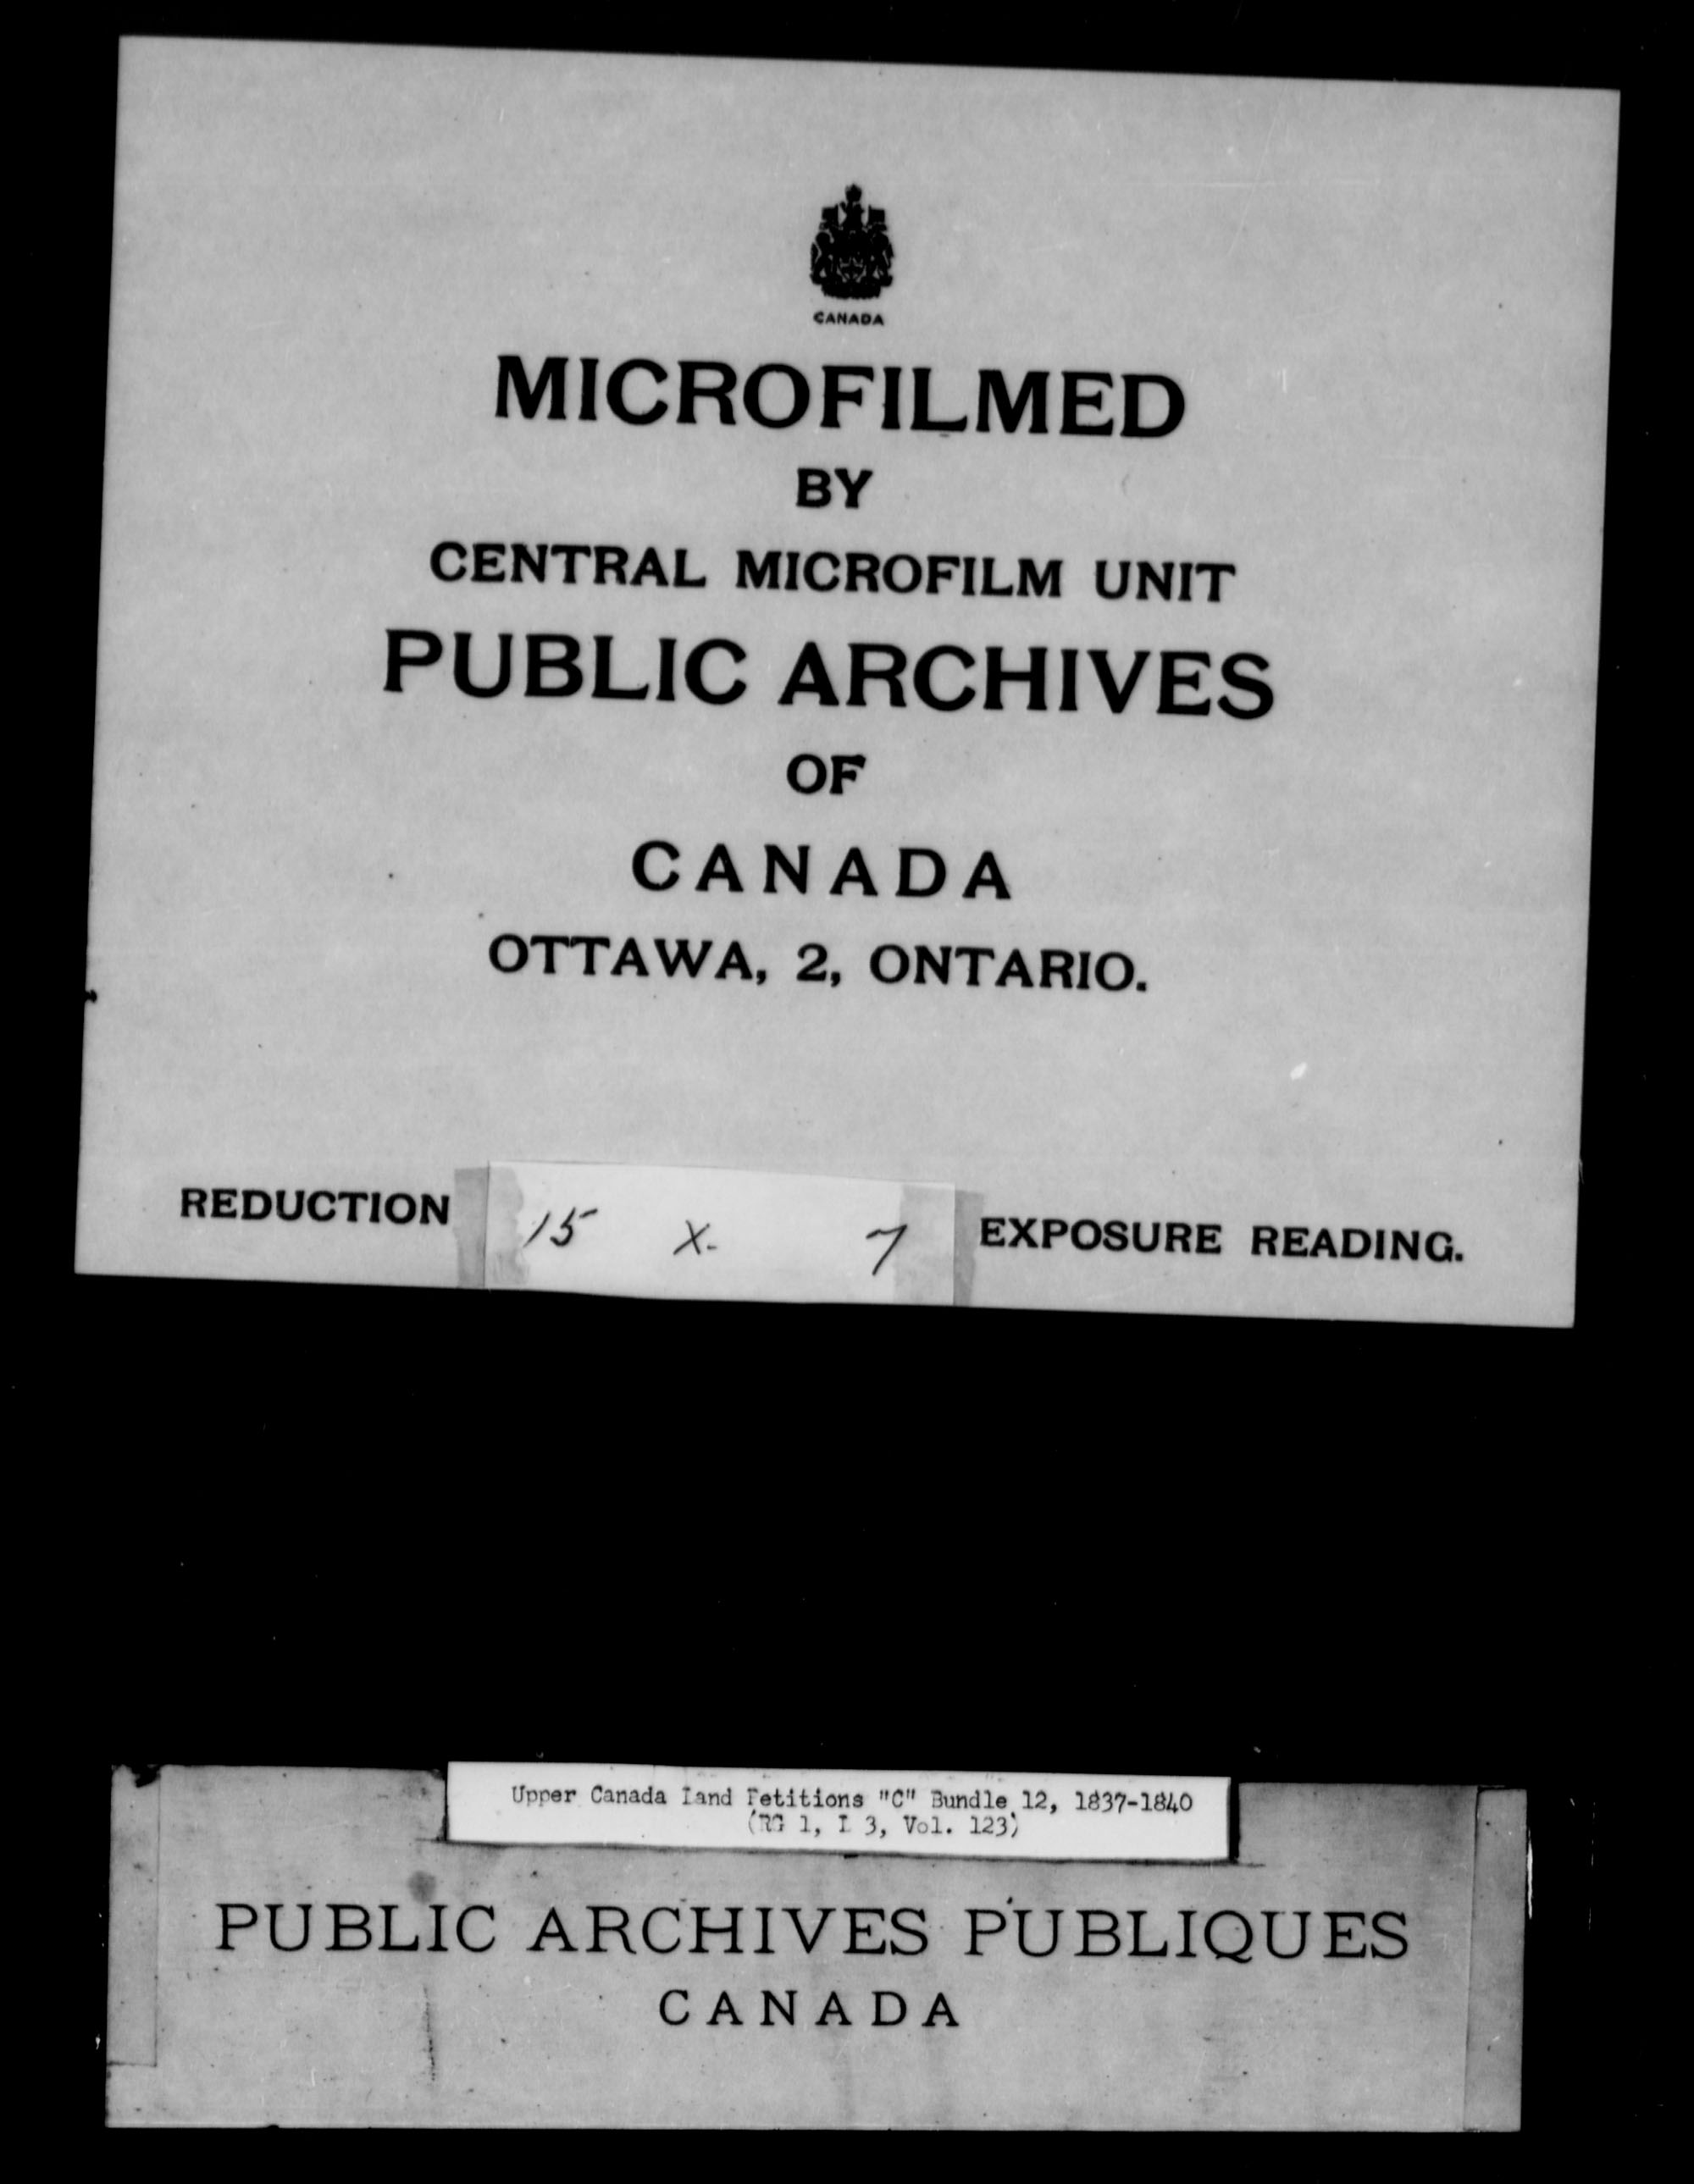 Title: Upper Canada Land Petitions (1763-1865) - Mikan Number: 205131 - Microform: c-1731